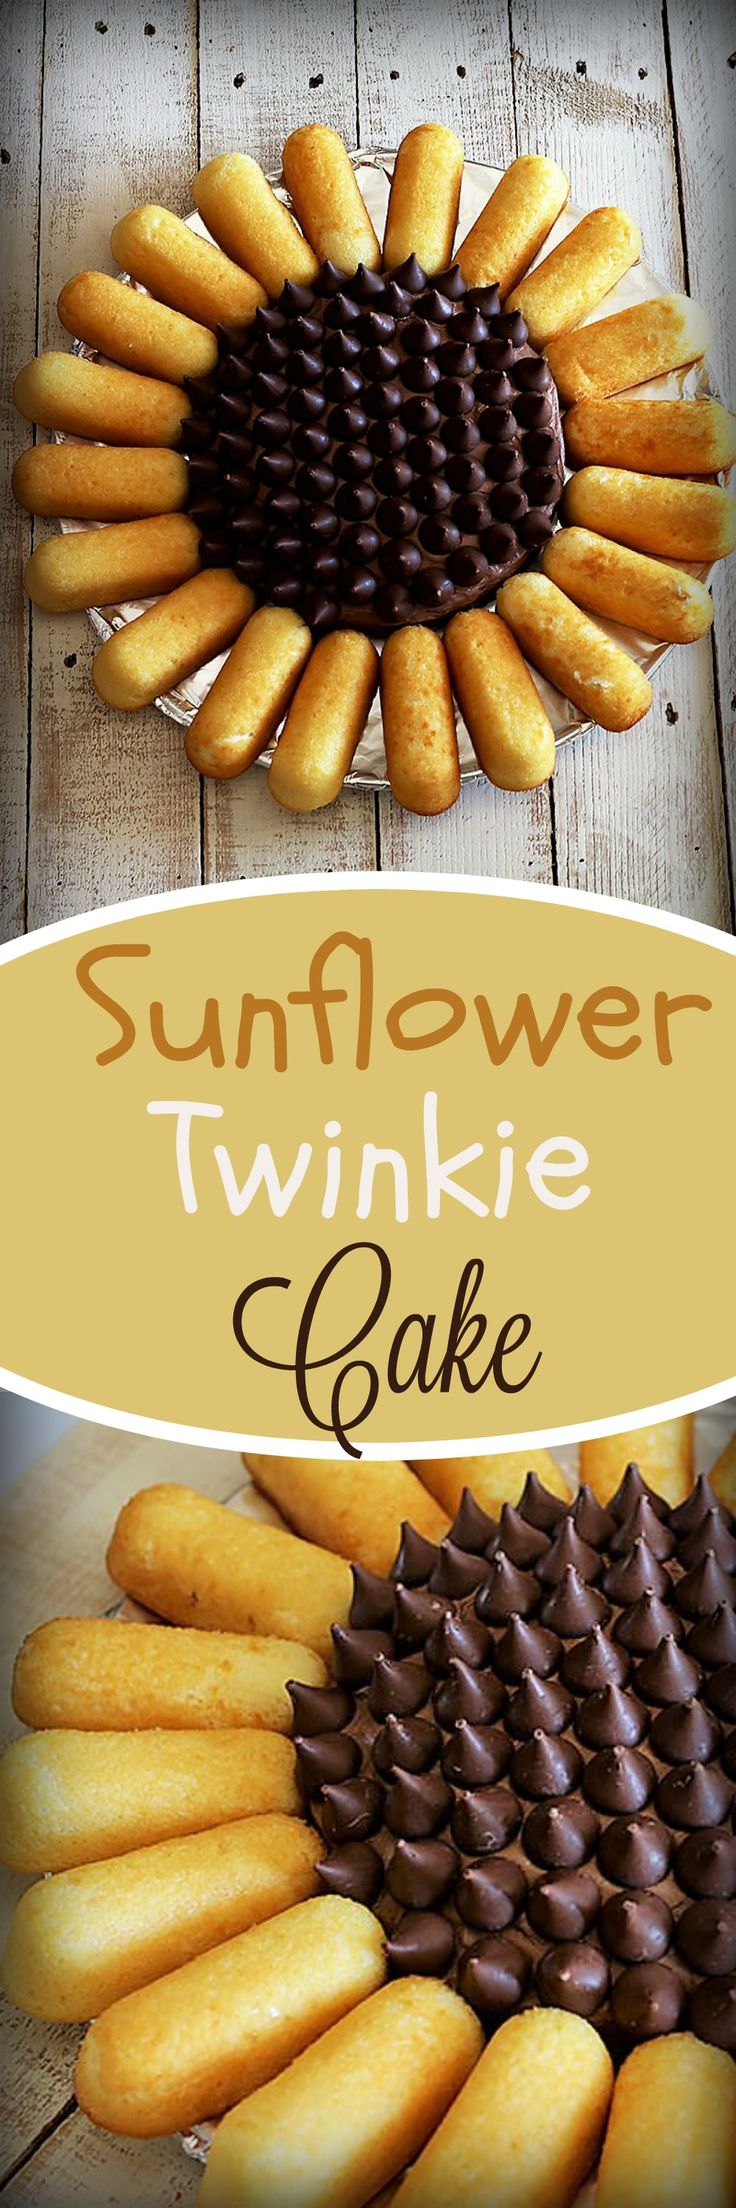 Sunflower Twinkie Cake! :-)